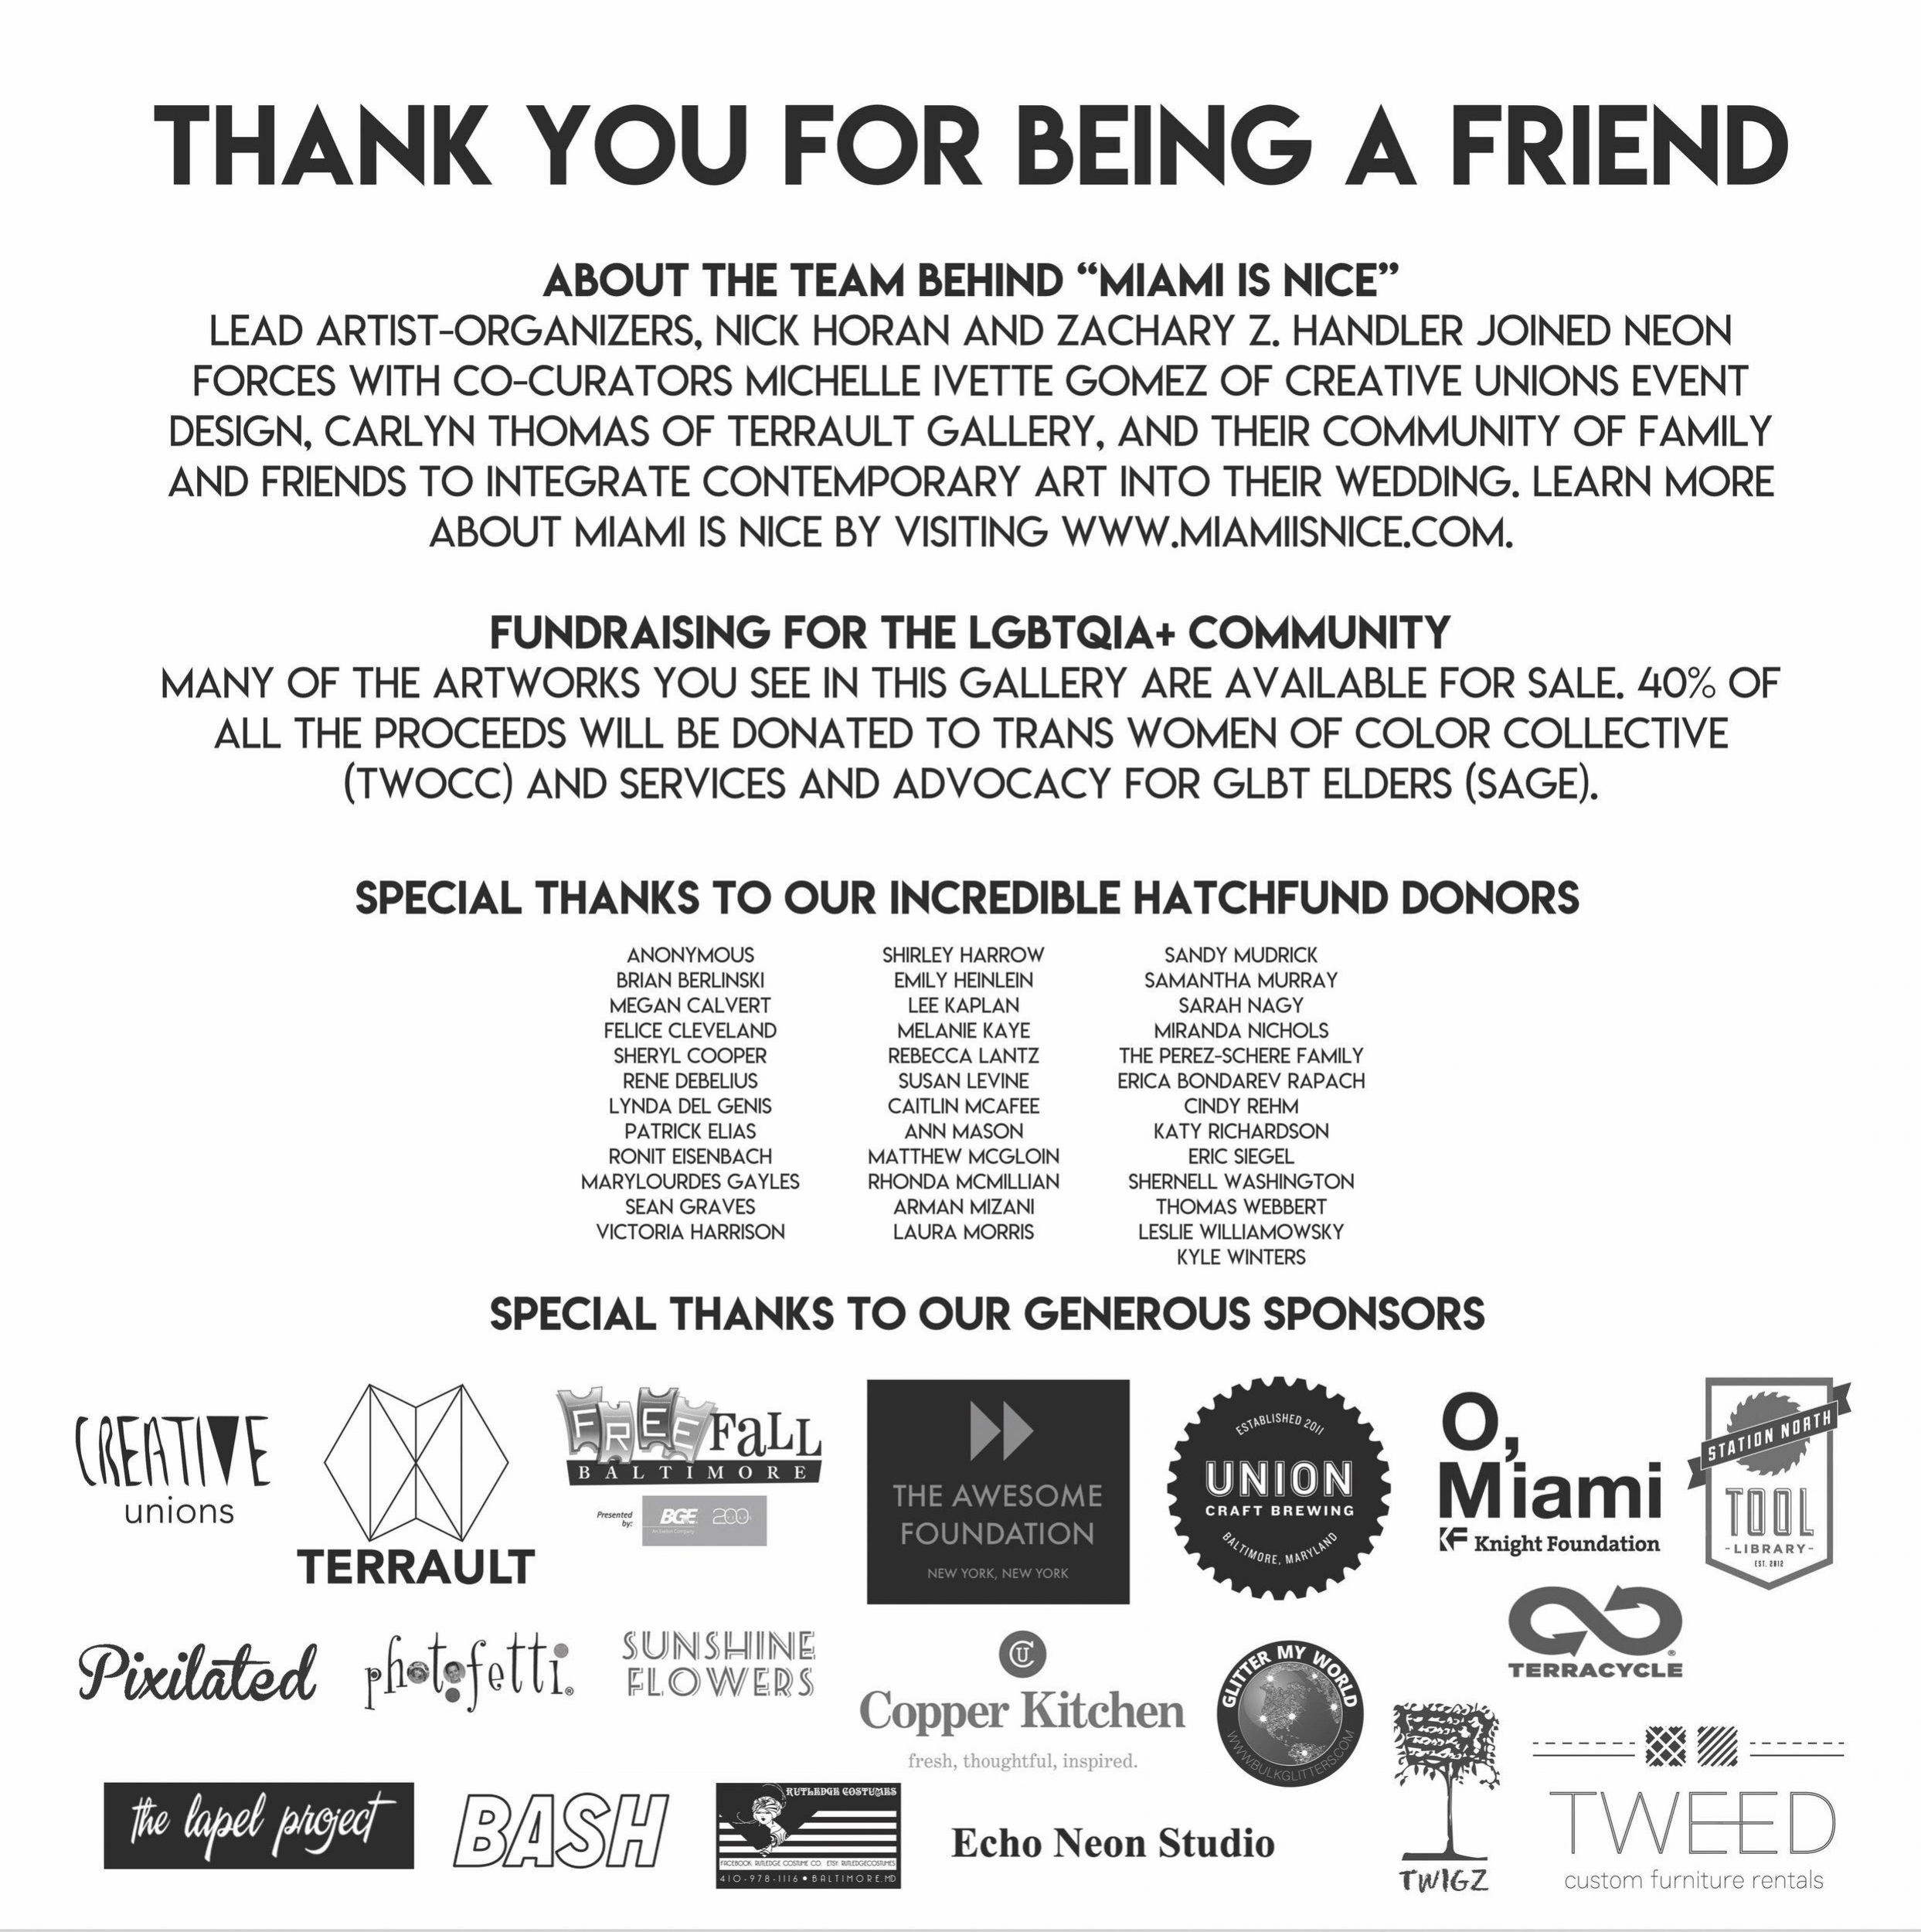 A special thanks to everyone who made this Creative Union possible!